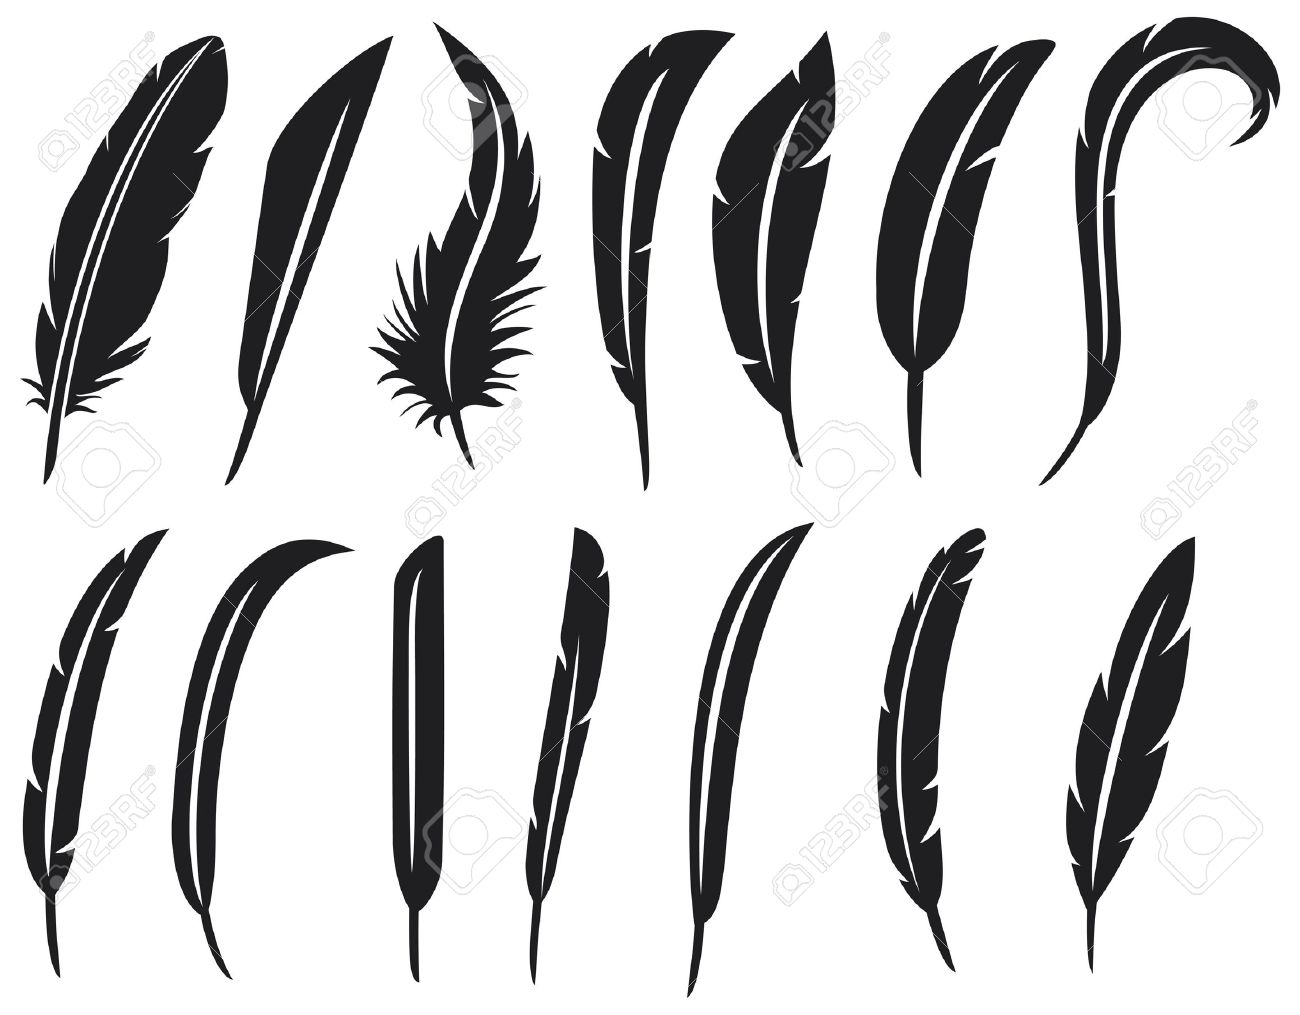 the collection of feathers feather collection, feather silhouette, feather set - 16096779